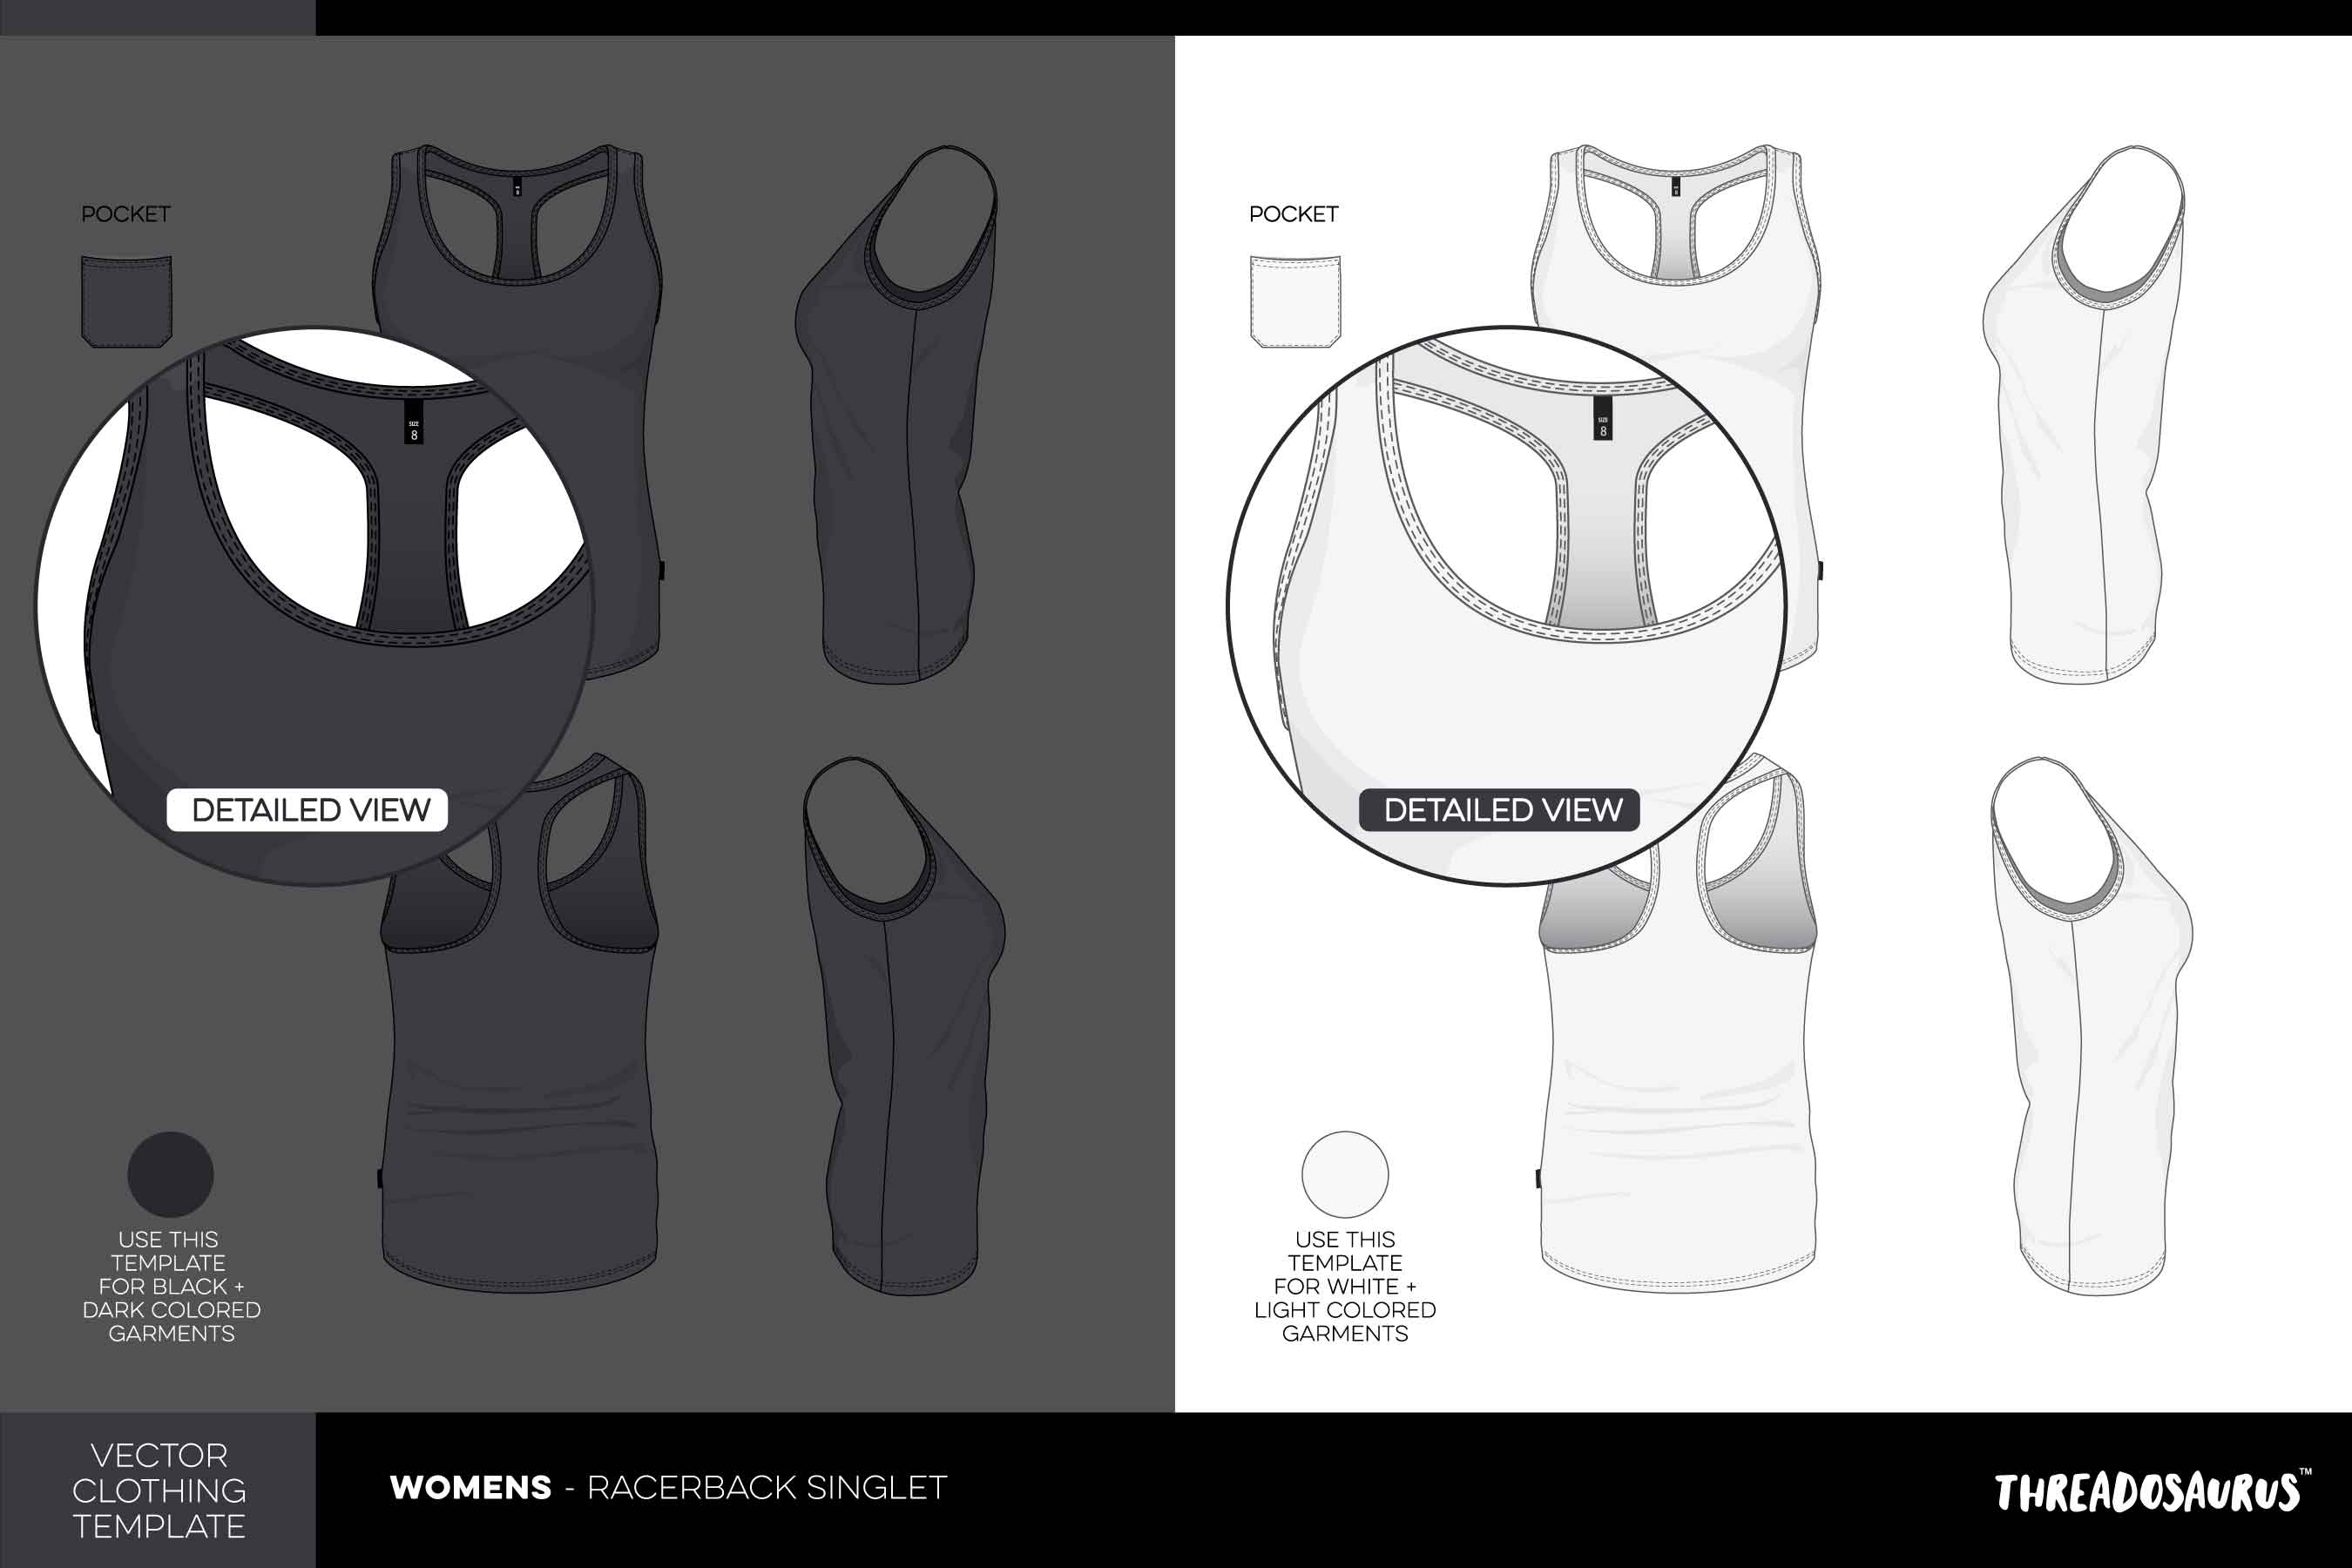 Womens-racerback-singlet-template-vector-pack